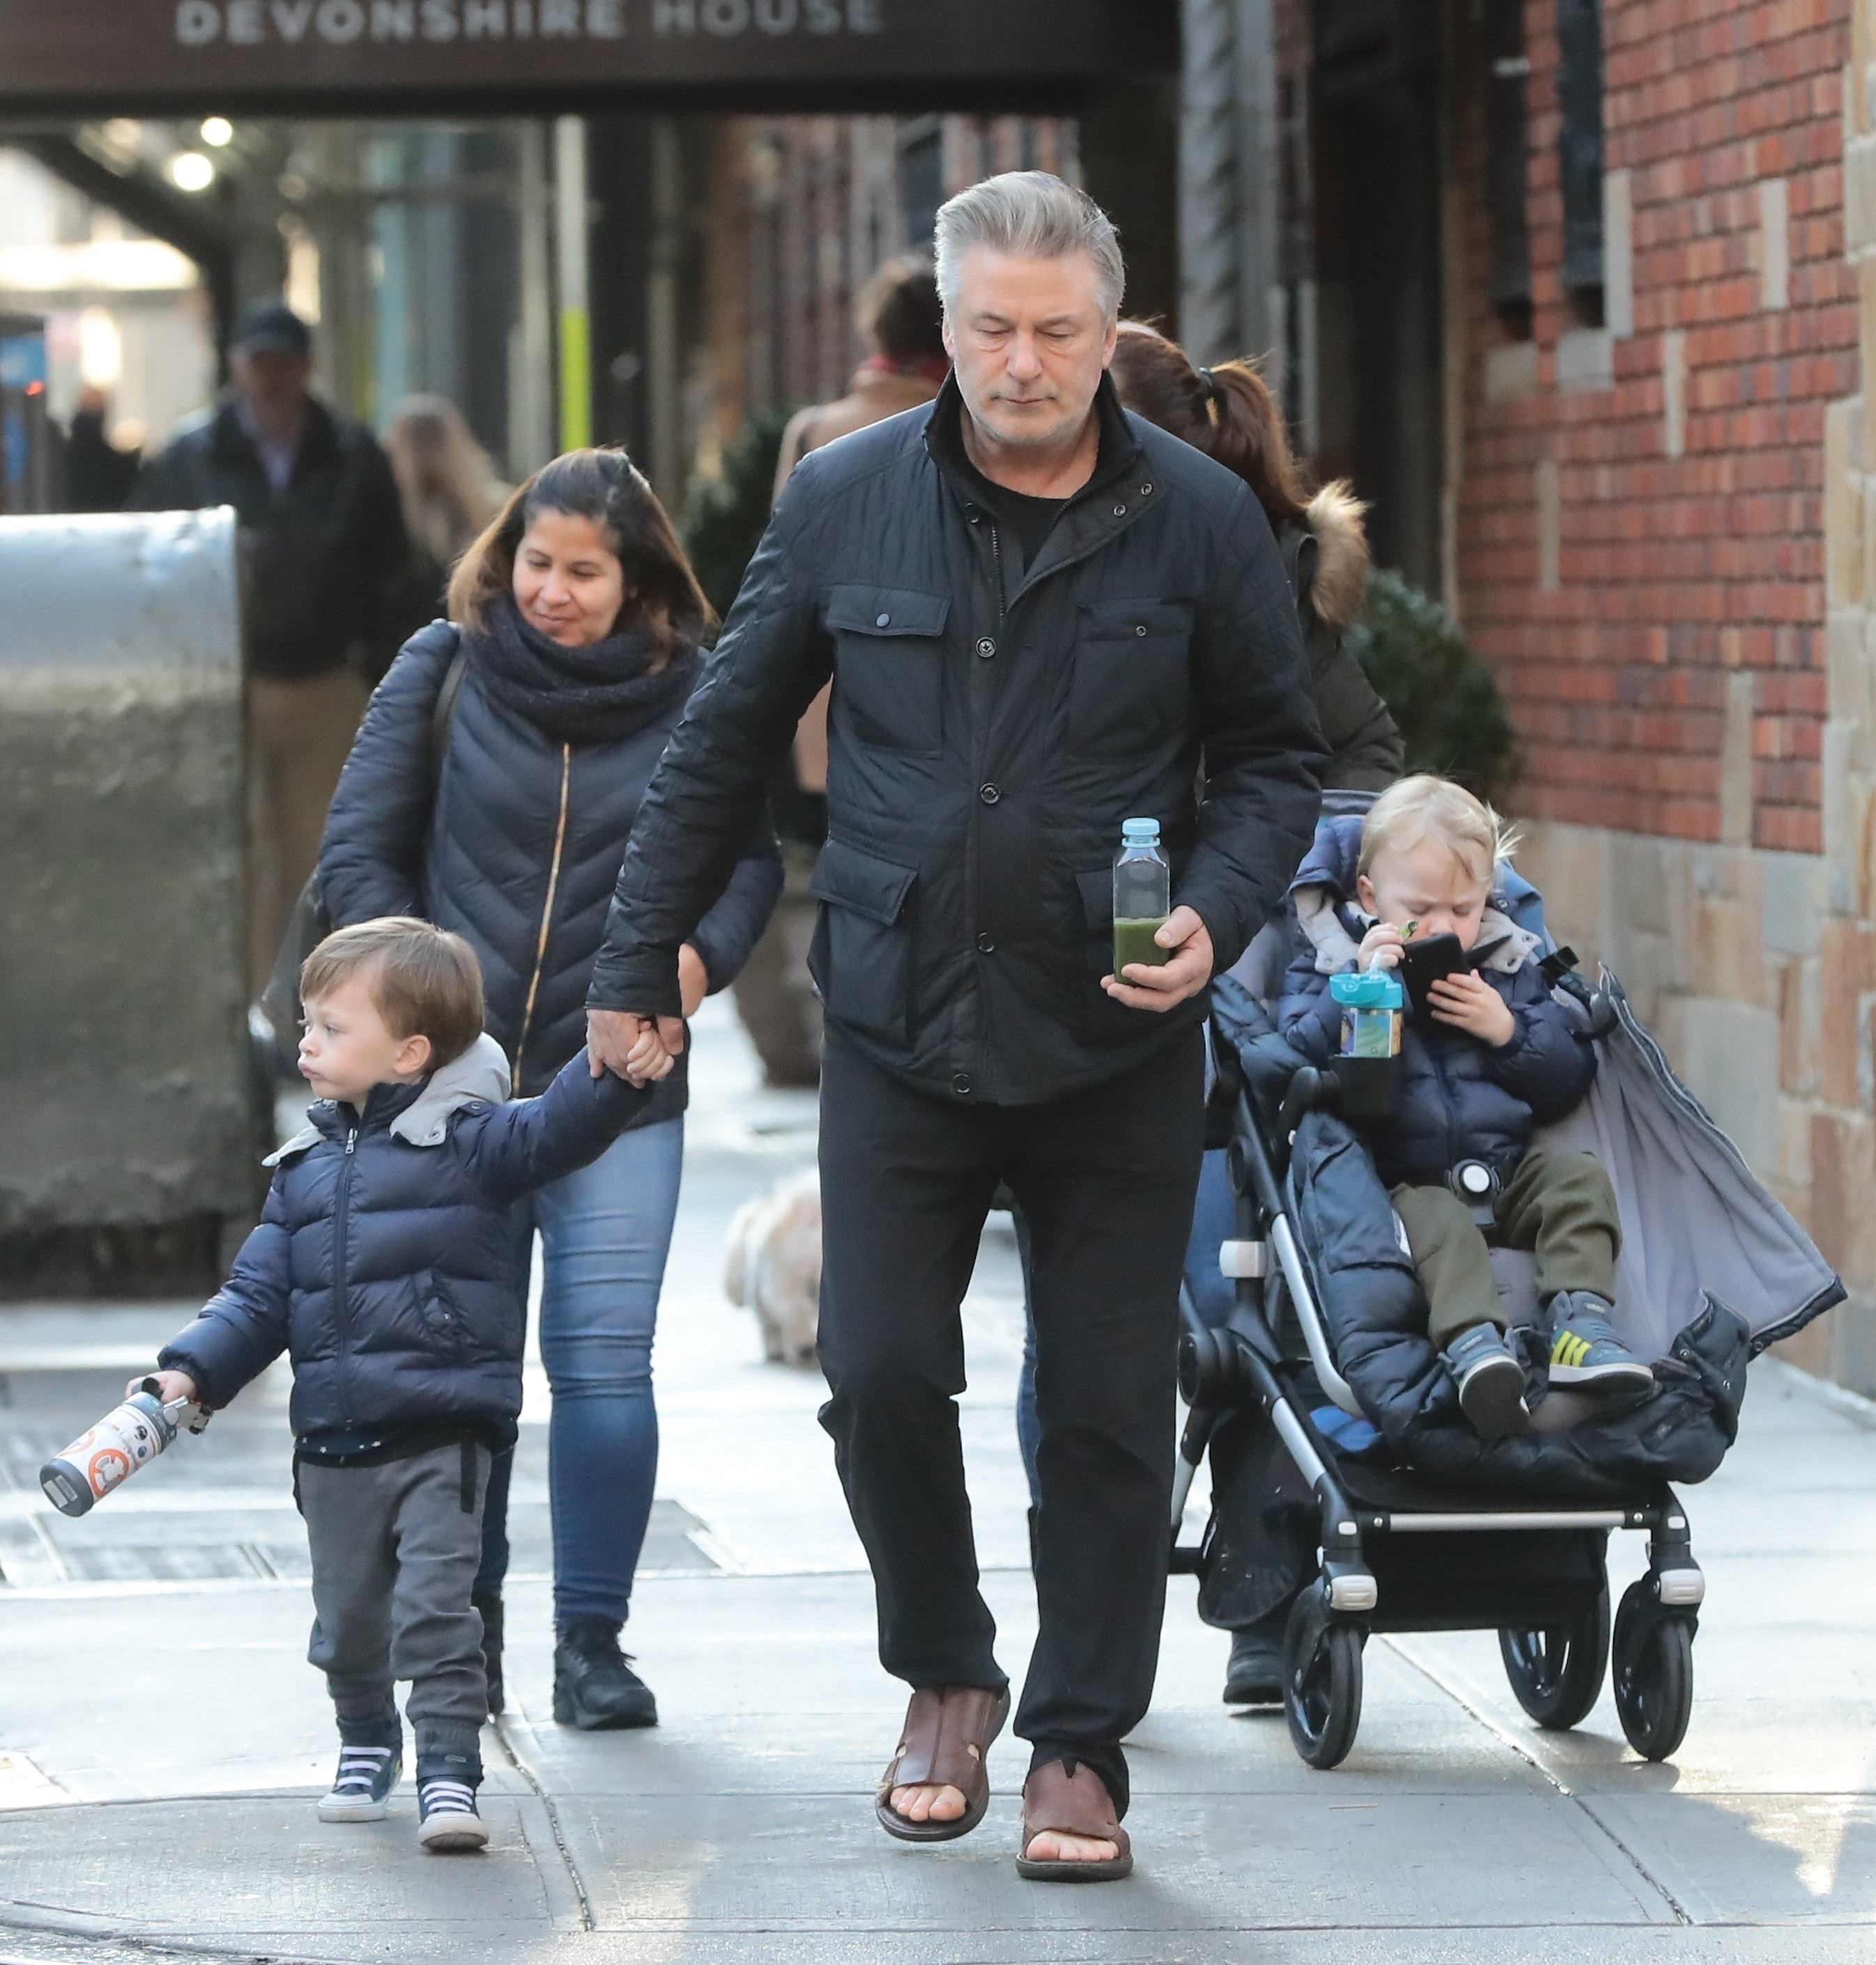 Alec Baldwin appeared to be on daddy duty while out running errands with his sons Leonardo and Rafael in New York City on March 14, 2019.